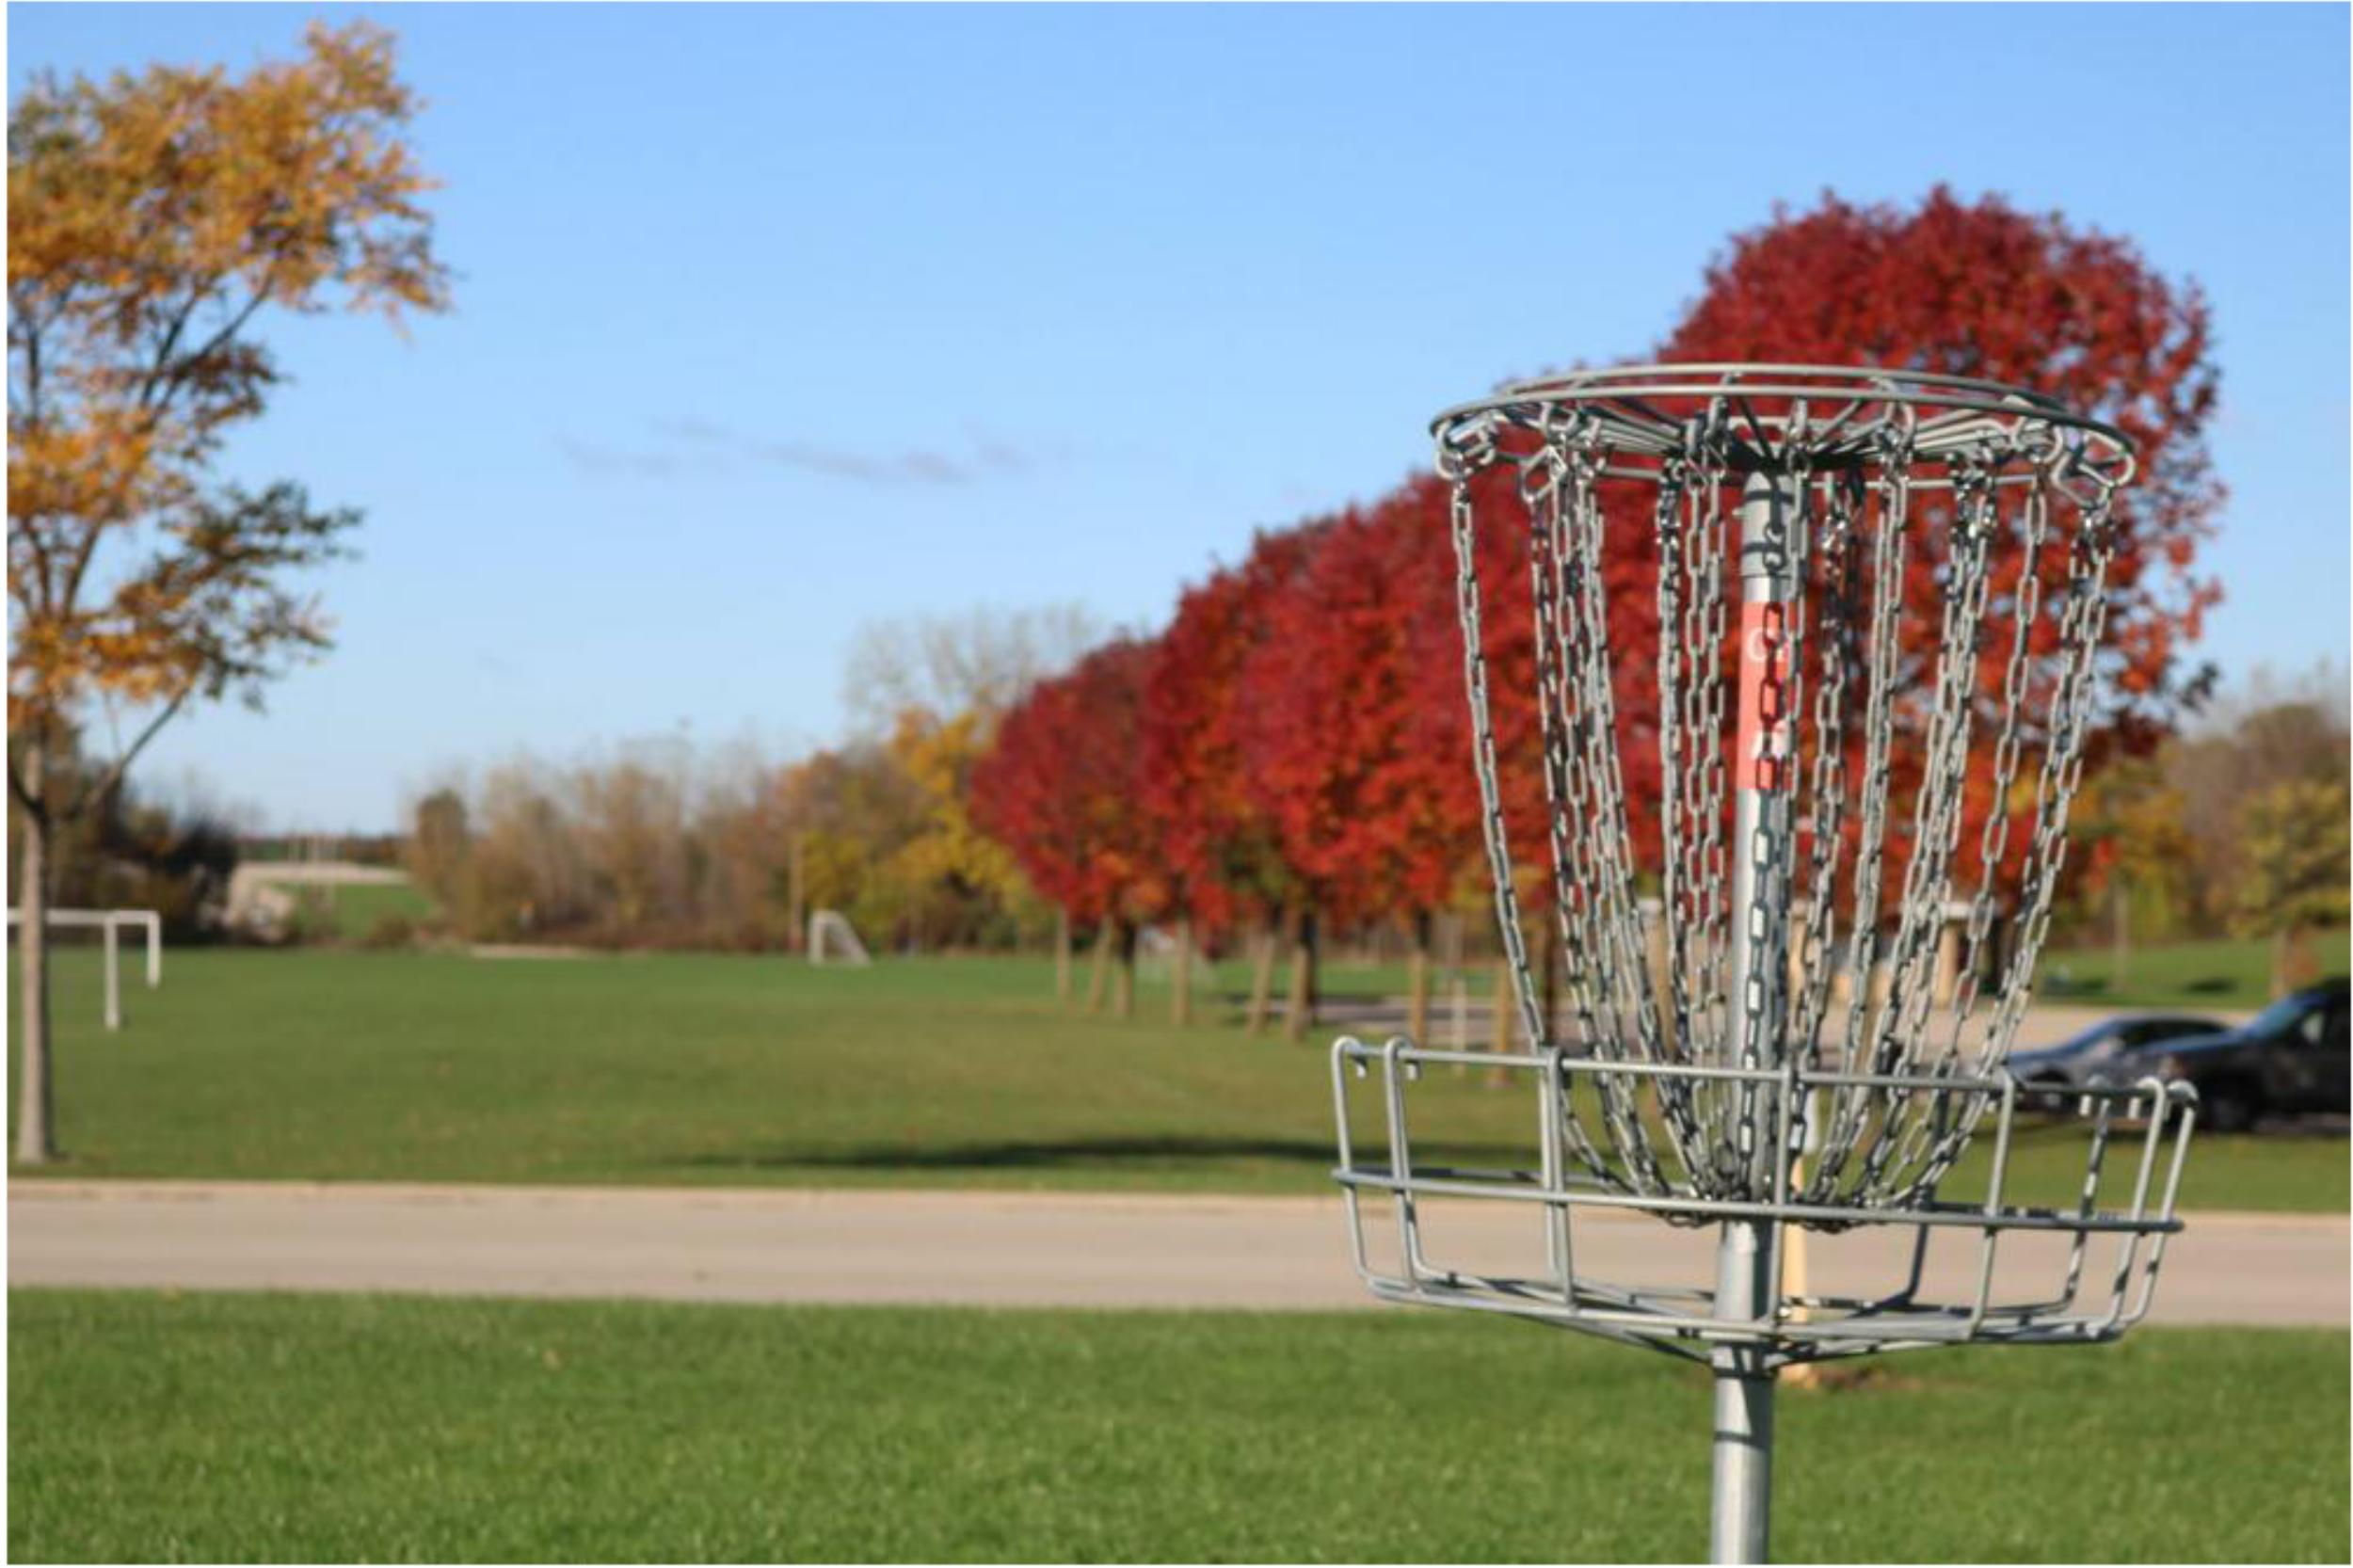 Rock River Disc Golf Course